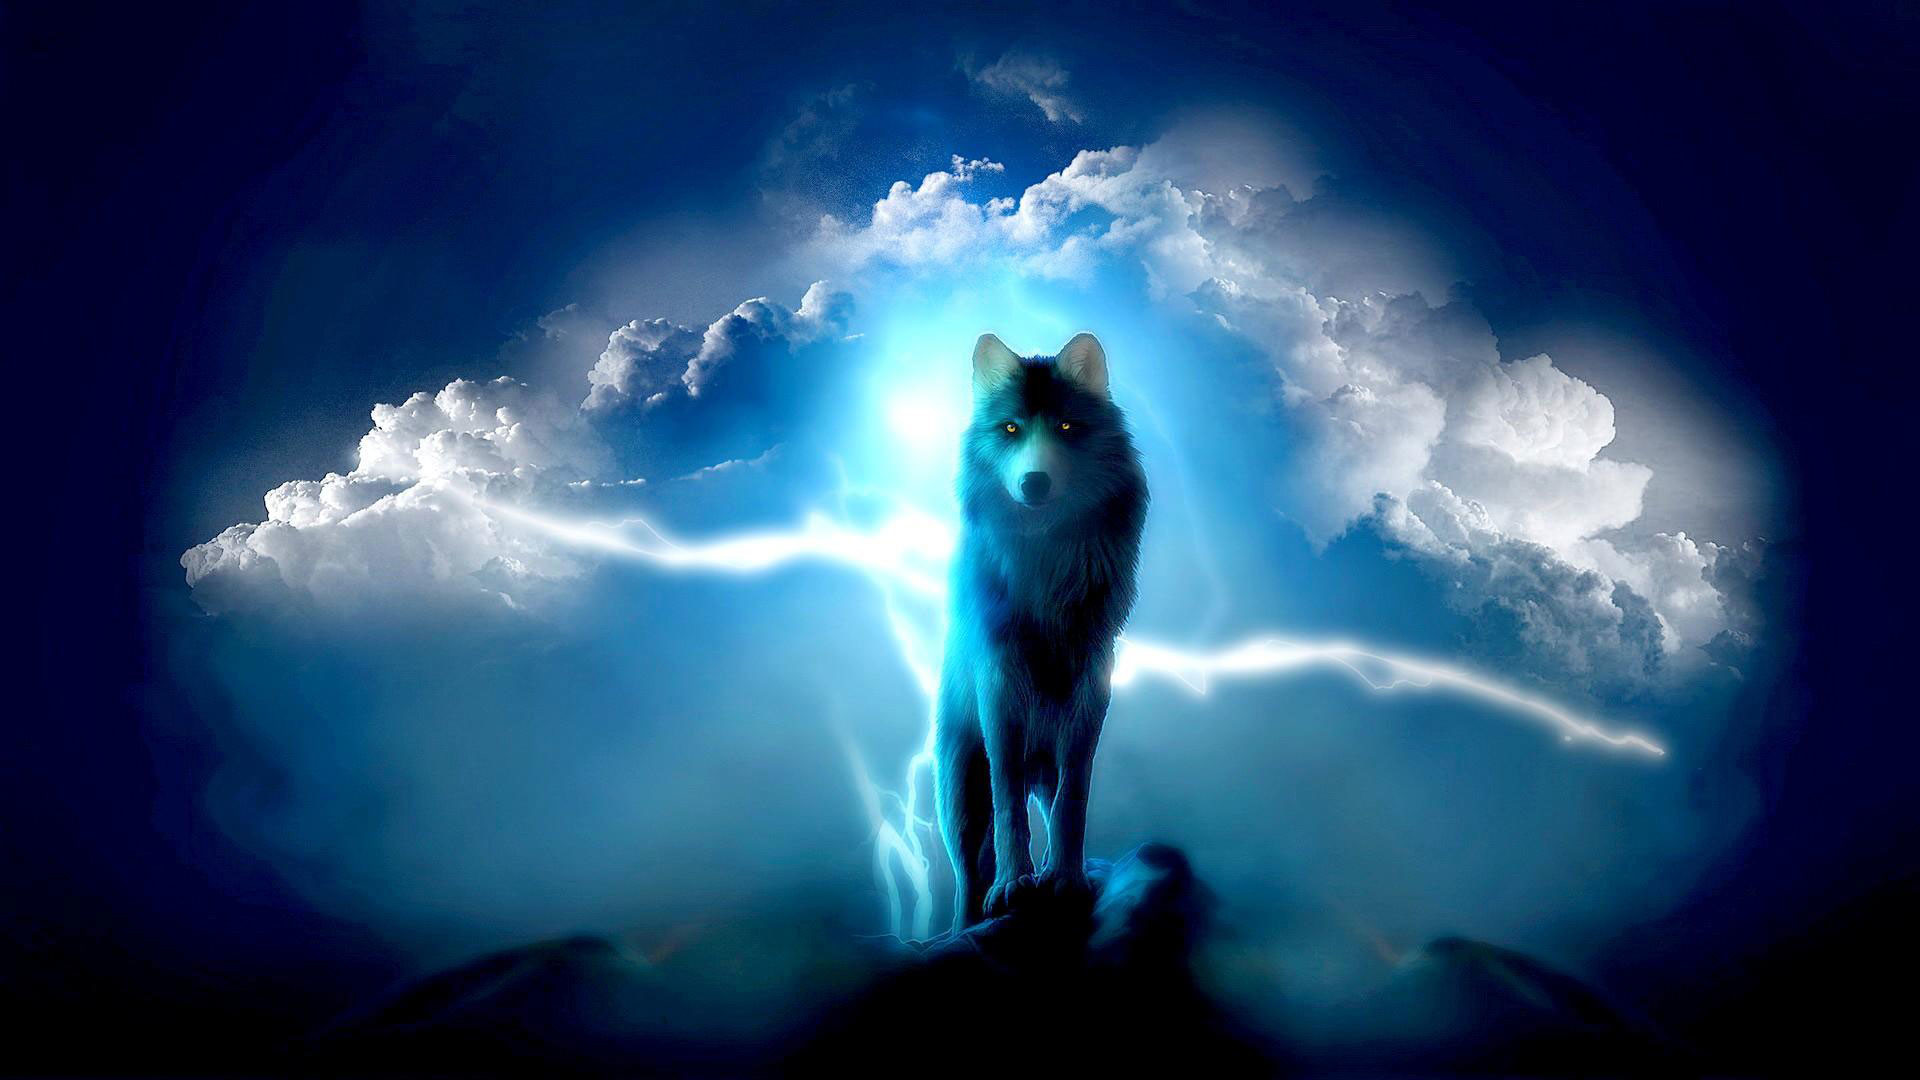 hd pics photos attractive animated wolf night blue clouds sky hd quality desktop  background wallpaper